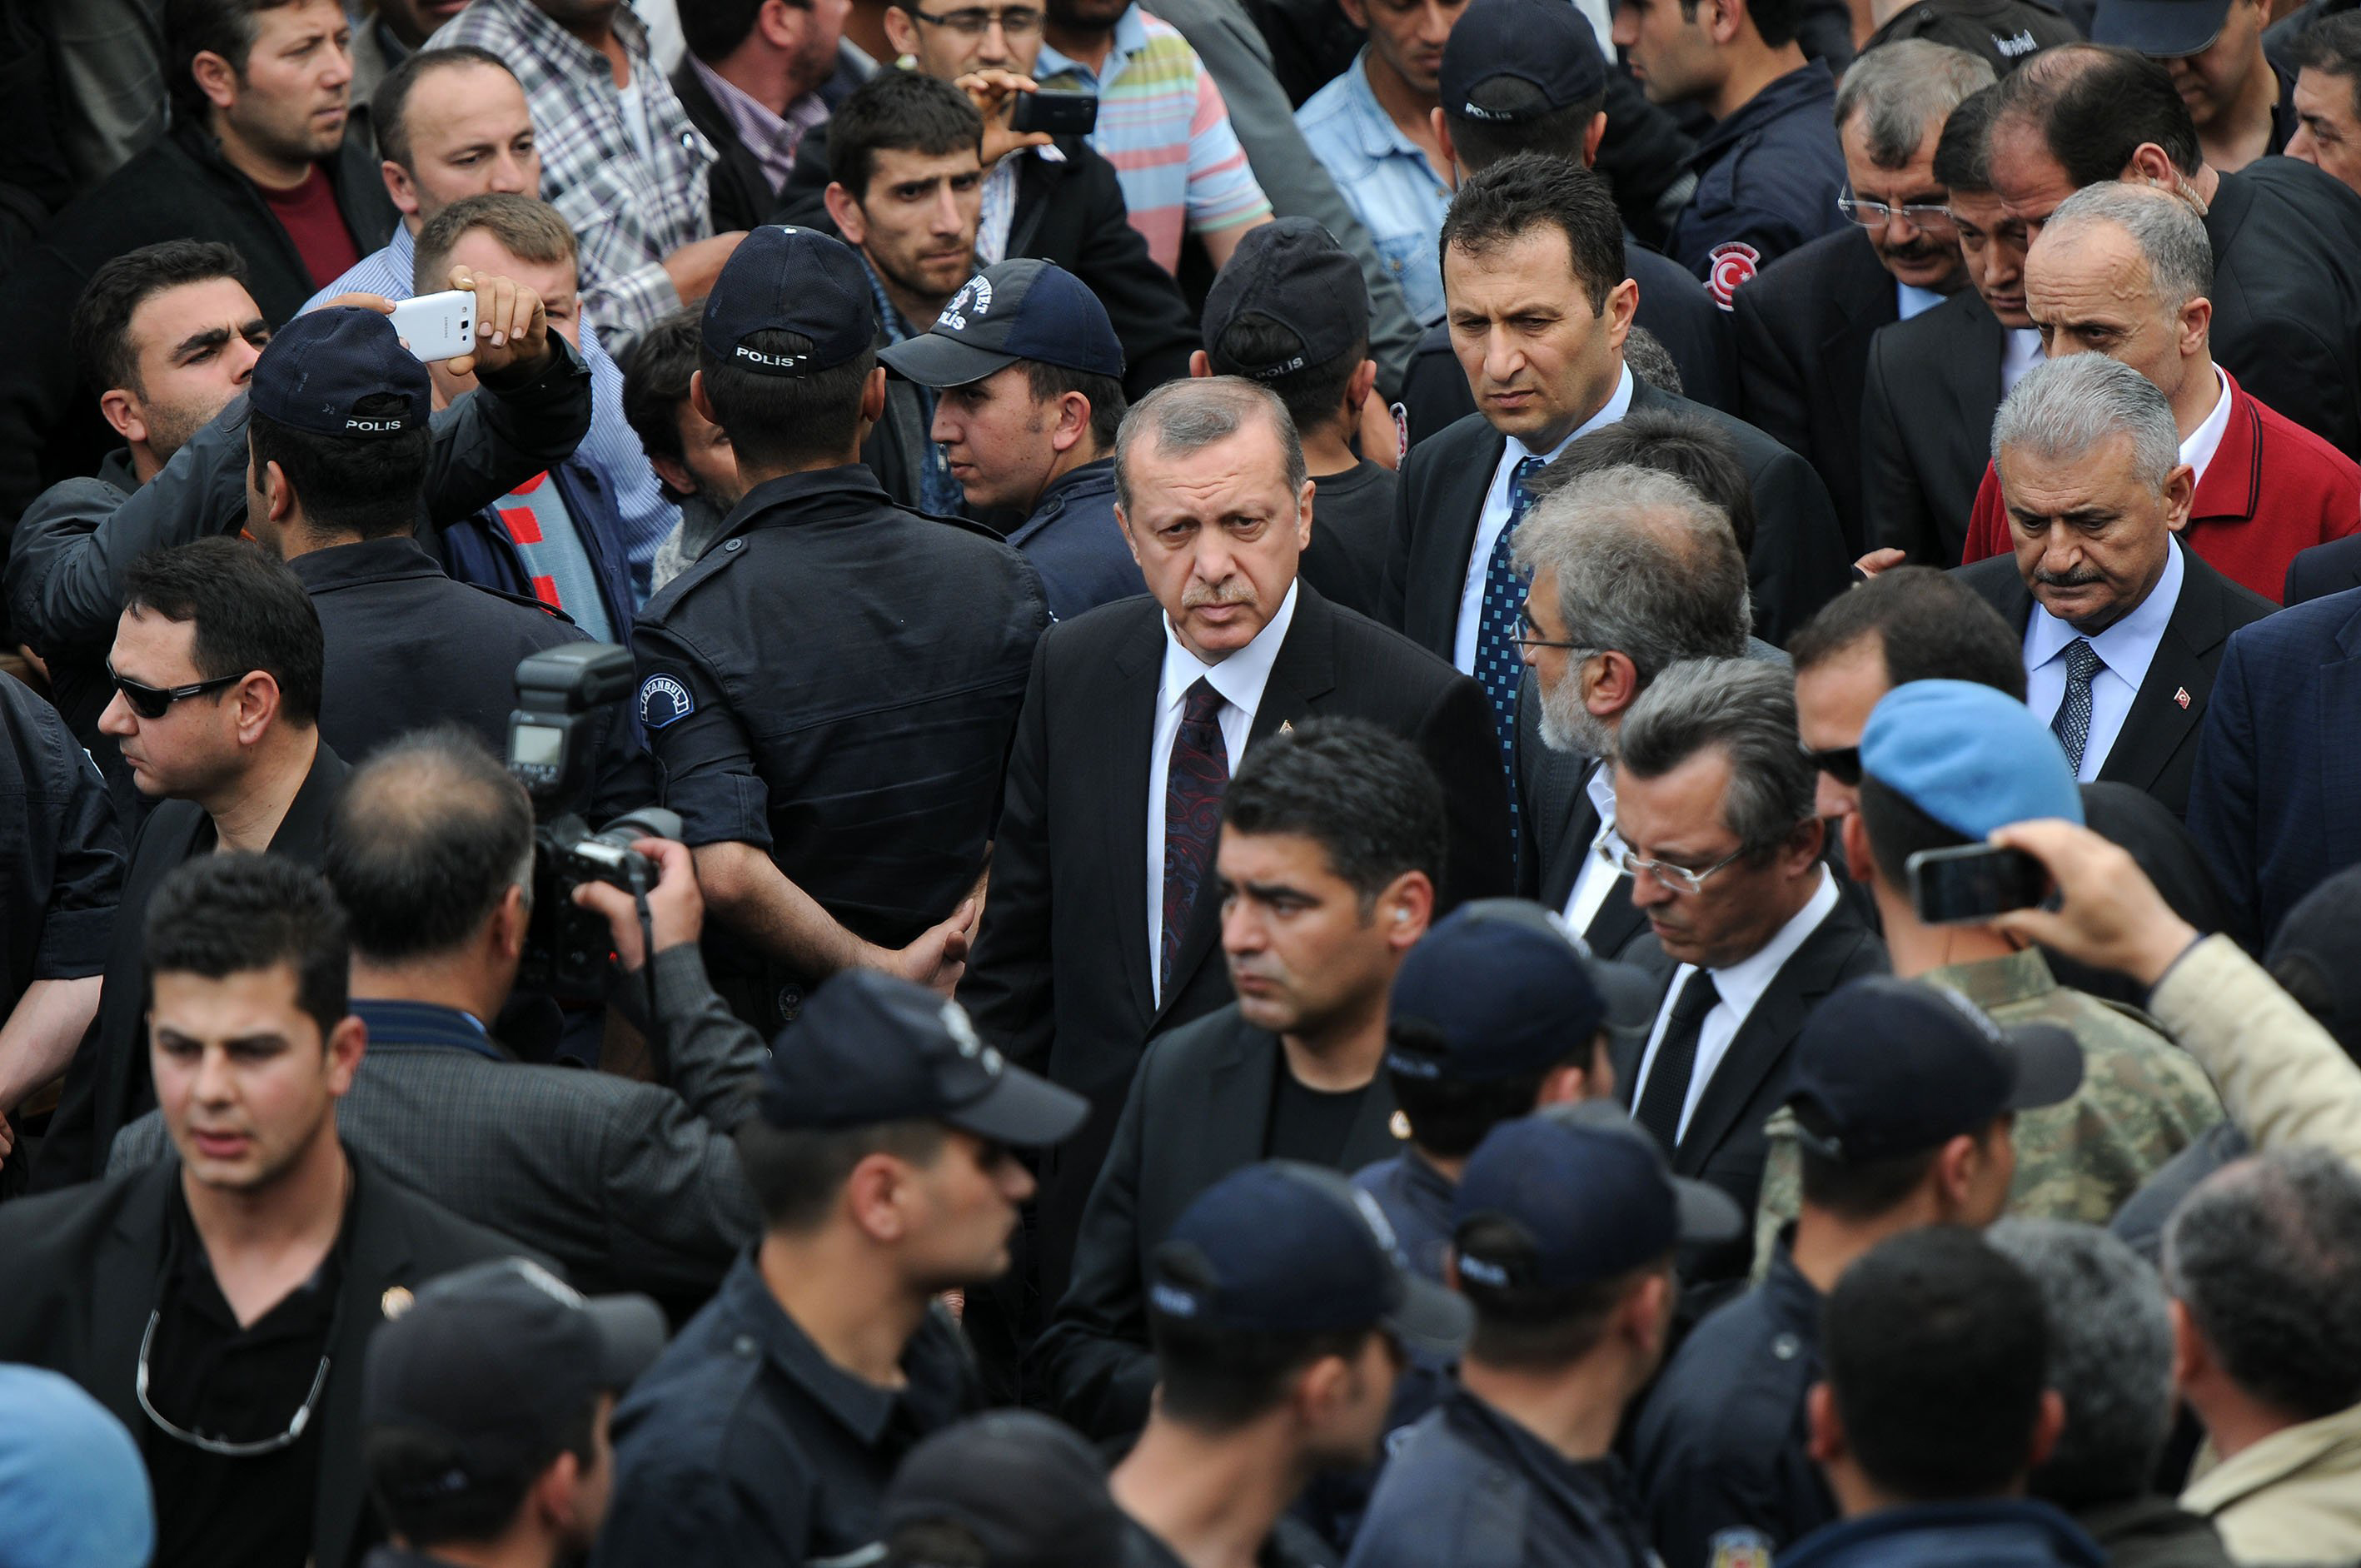 Prime Minister Recep Tayyip Erdogan visits scene of accident following the coal mine fire disaster in Soma district of Manisa, western Turkish province, on May 14, 2014.